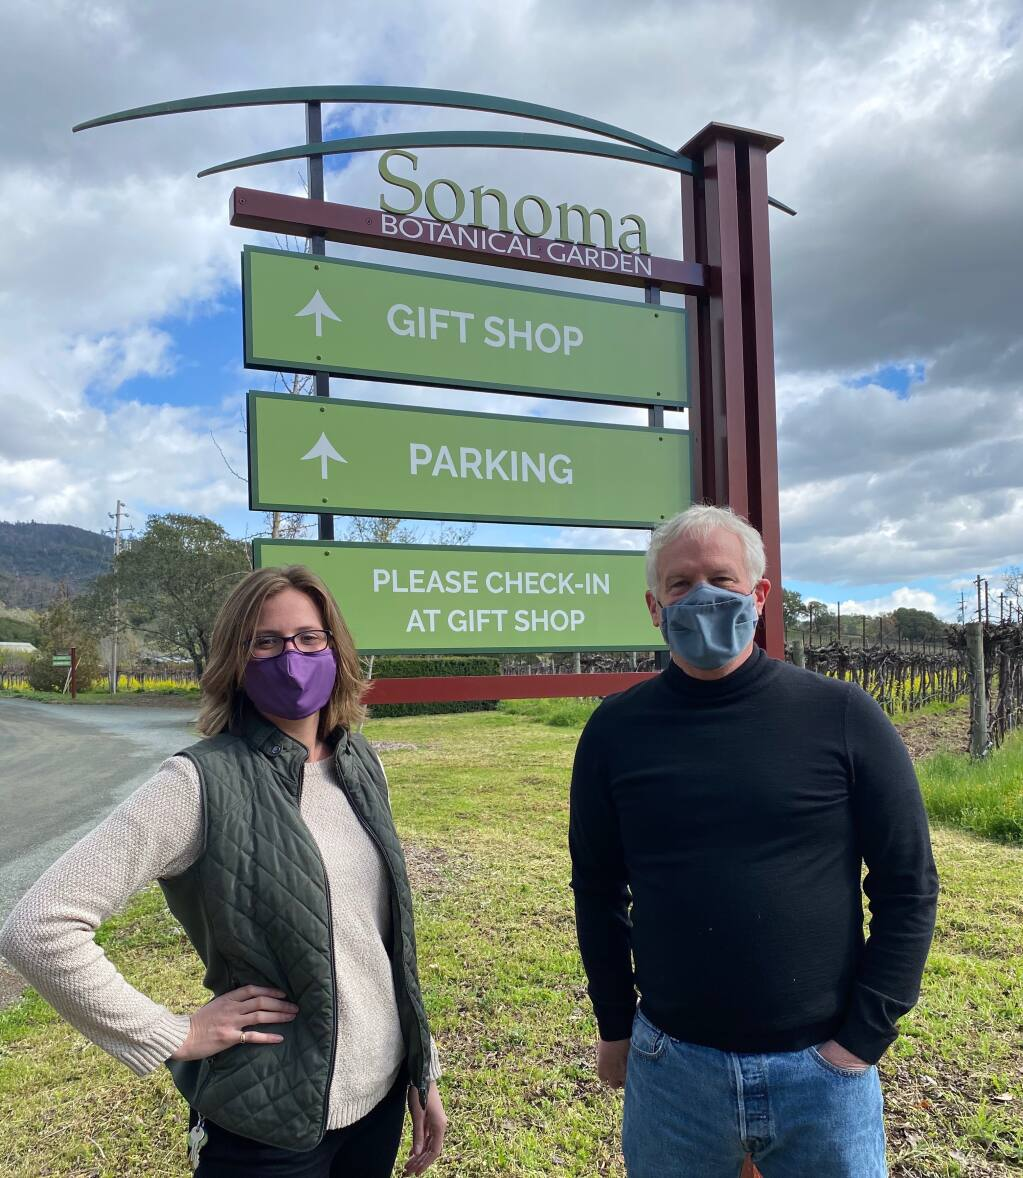 Kate Rabuck, curator of education and exhibitions, and Scot Medbury, director, show the Sonoma Botanical Garden's new sign. (Sonoma Botanical Garden)